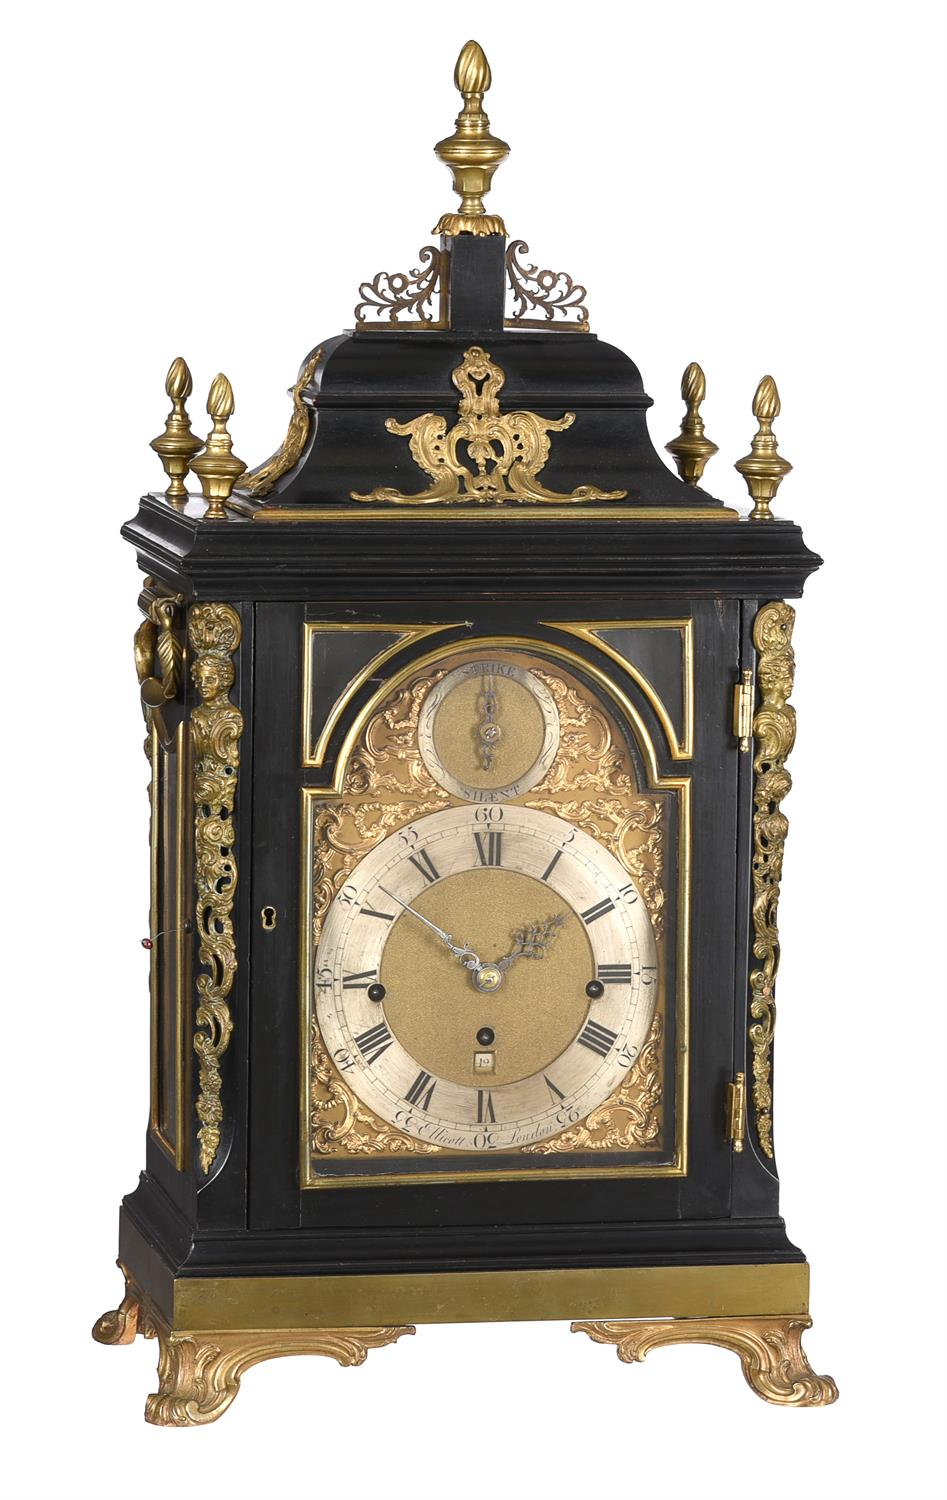 A fine George III ormolu mounted ebonised quarter-chiming table clock with pull-trip repeat